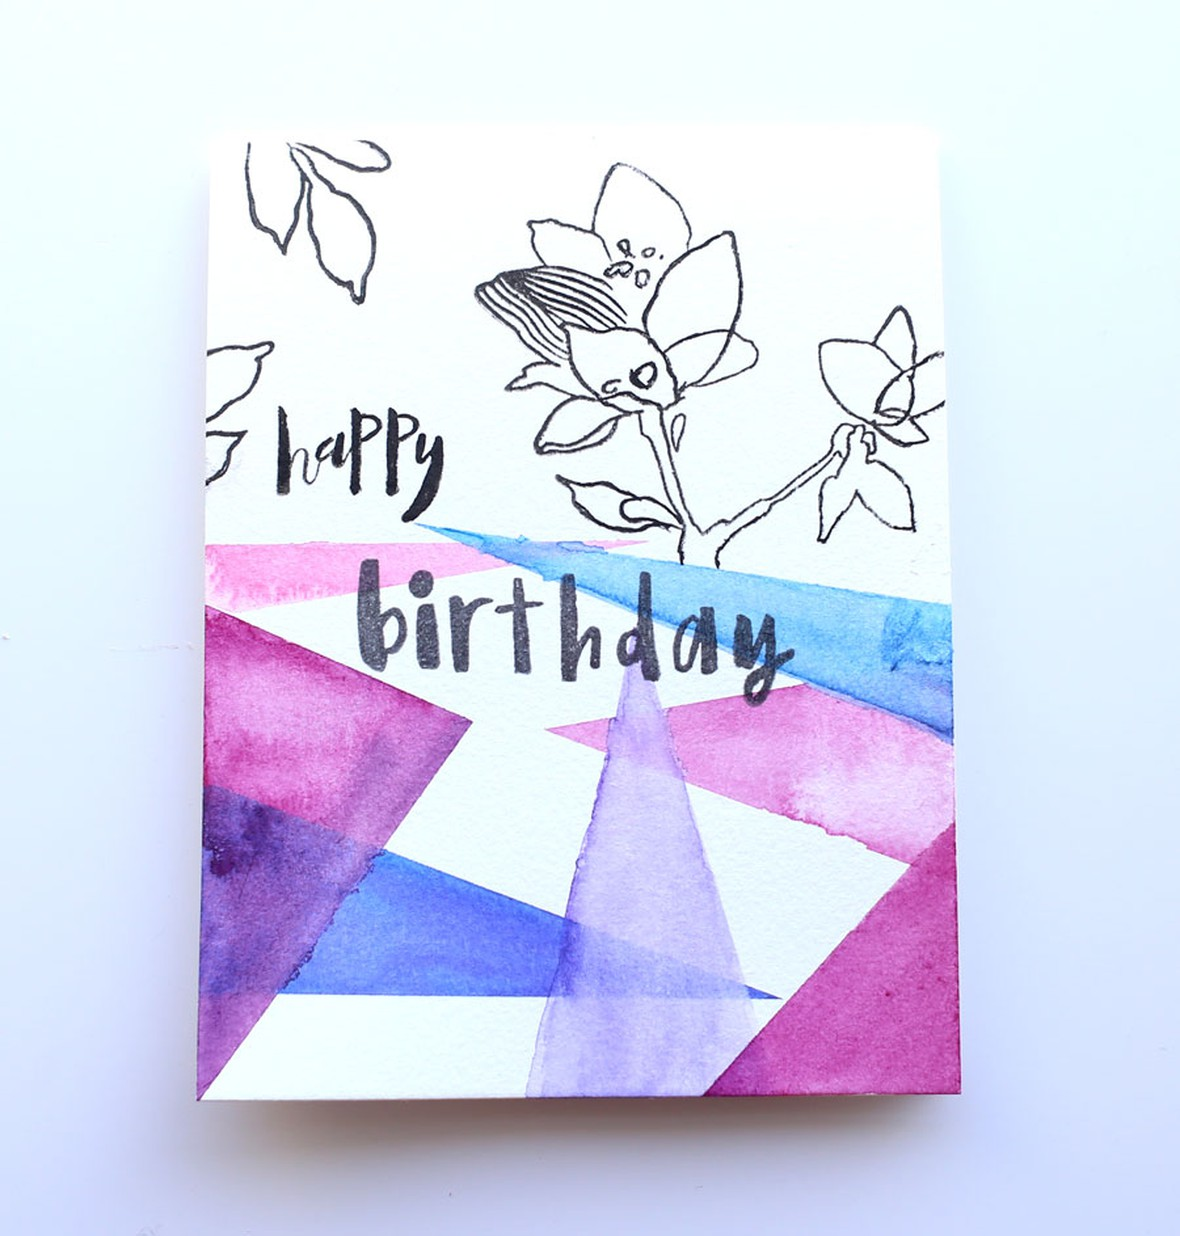 Happybirthdaye2018card web original